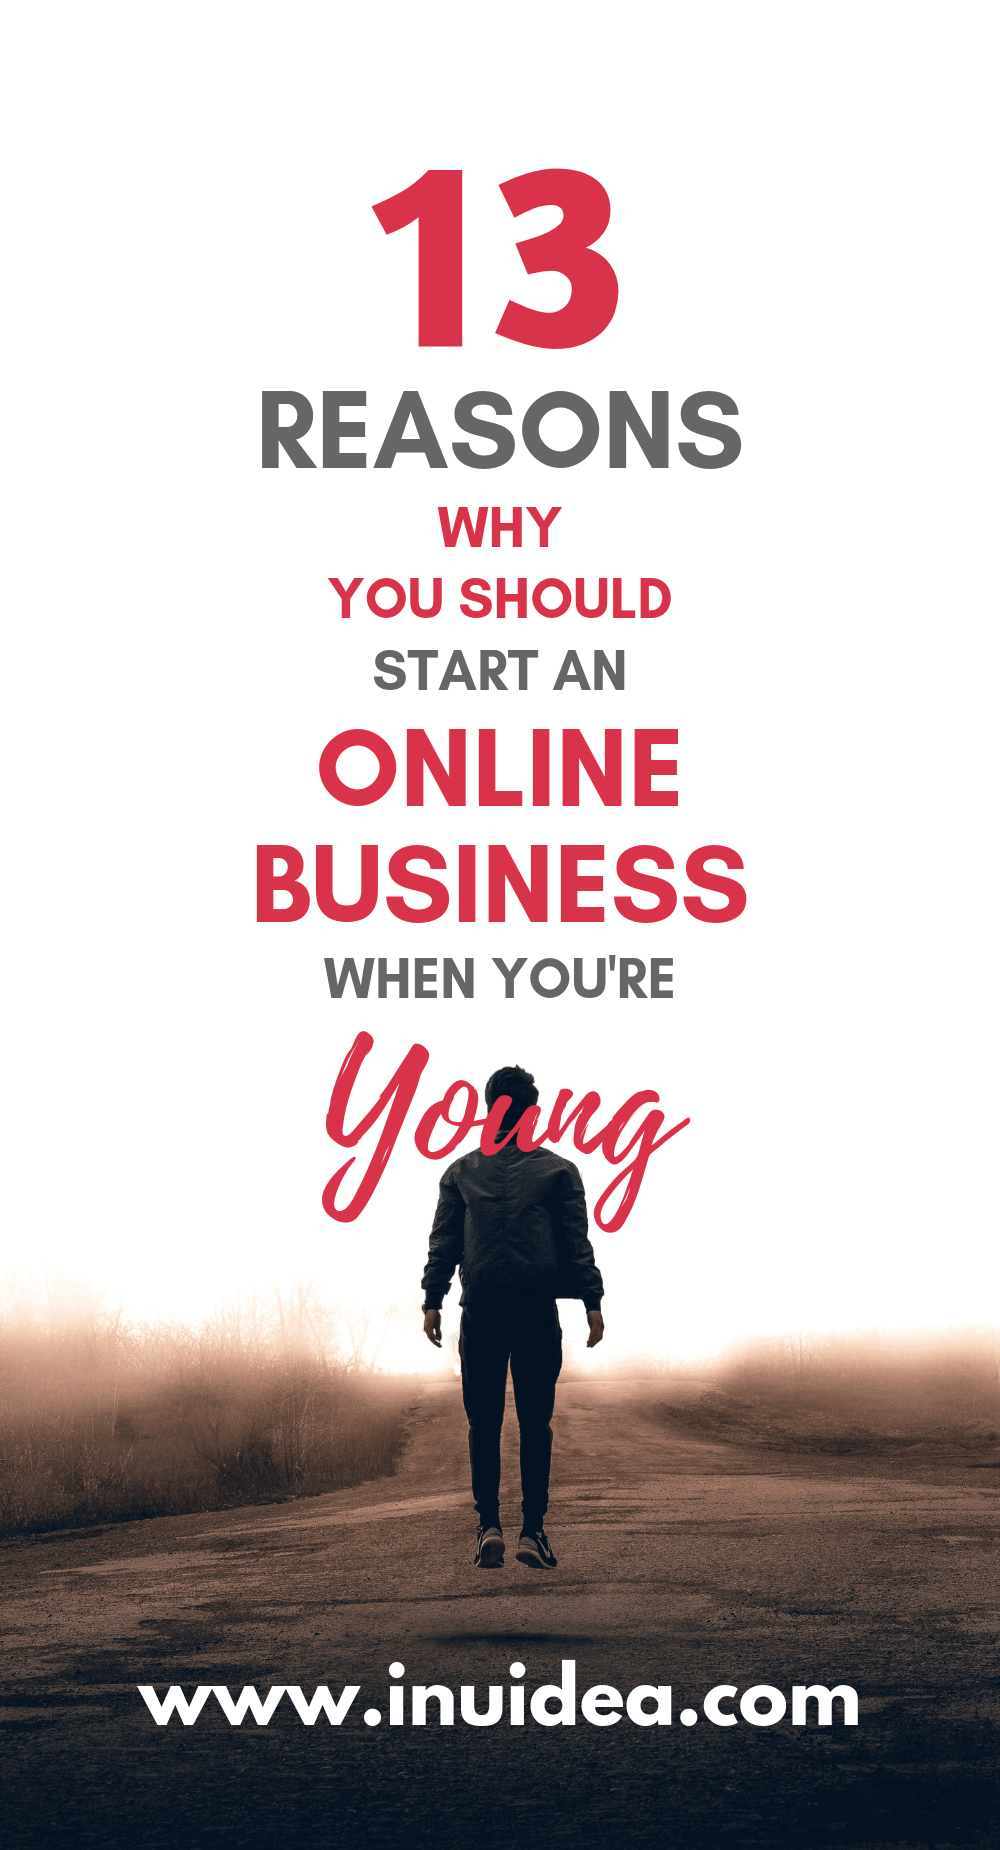 13 Reasons Why You Should Start an Online Business When You're Young